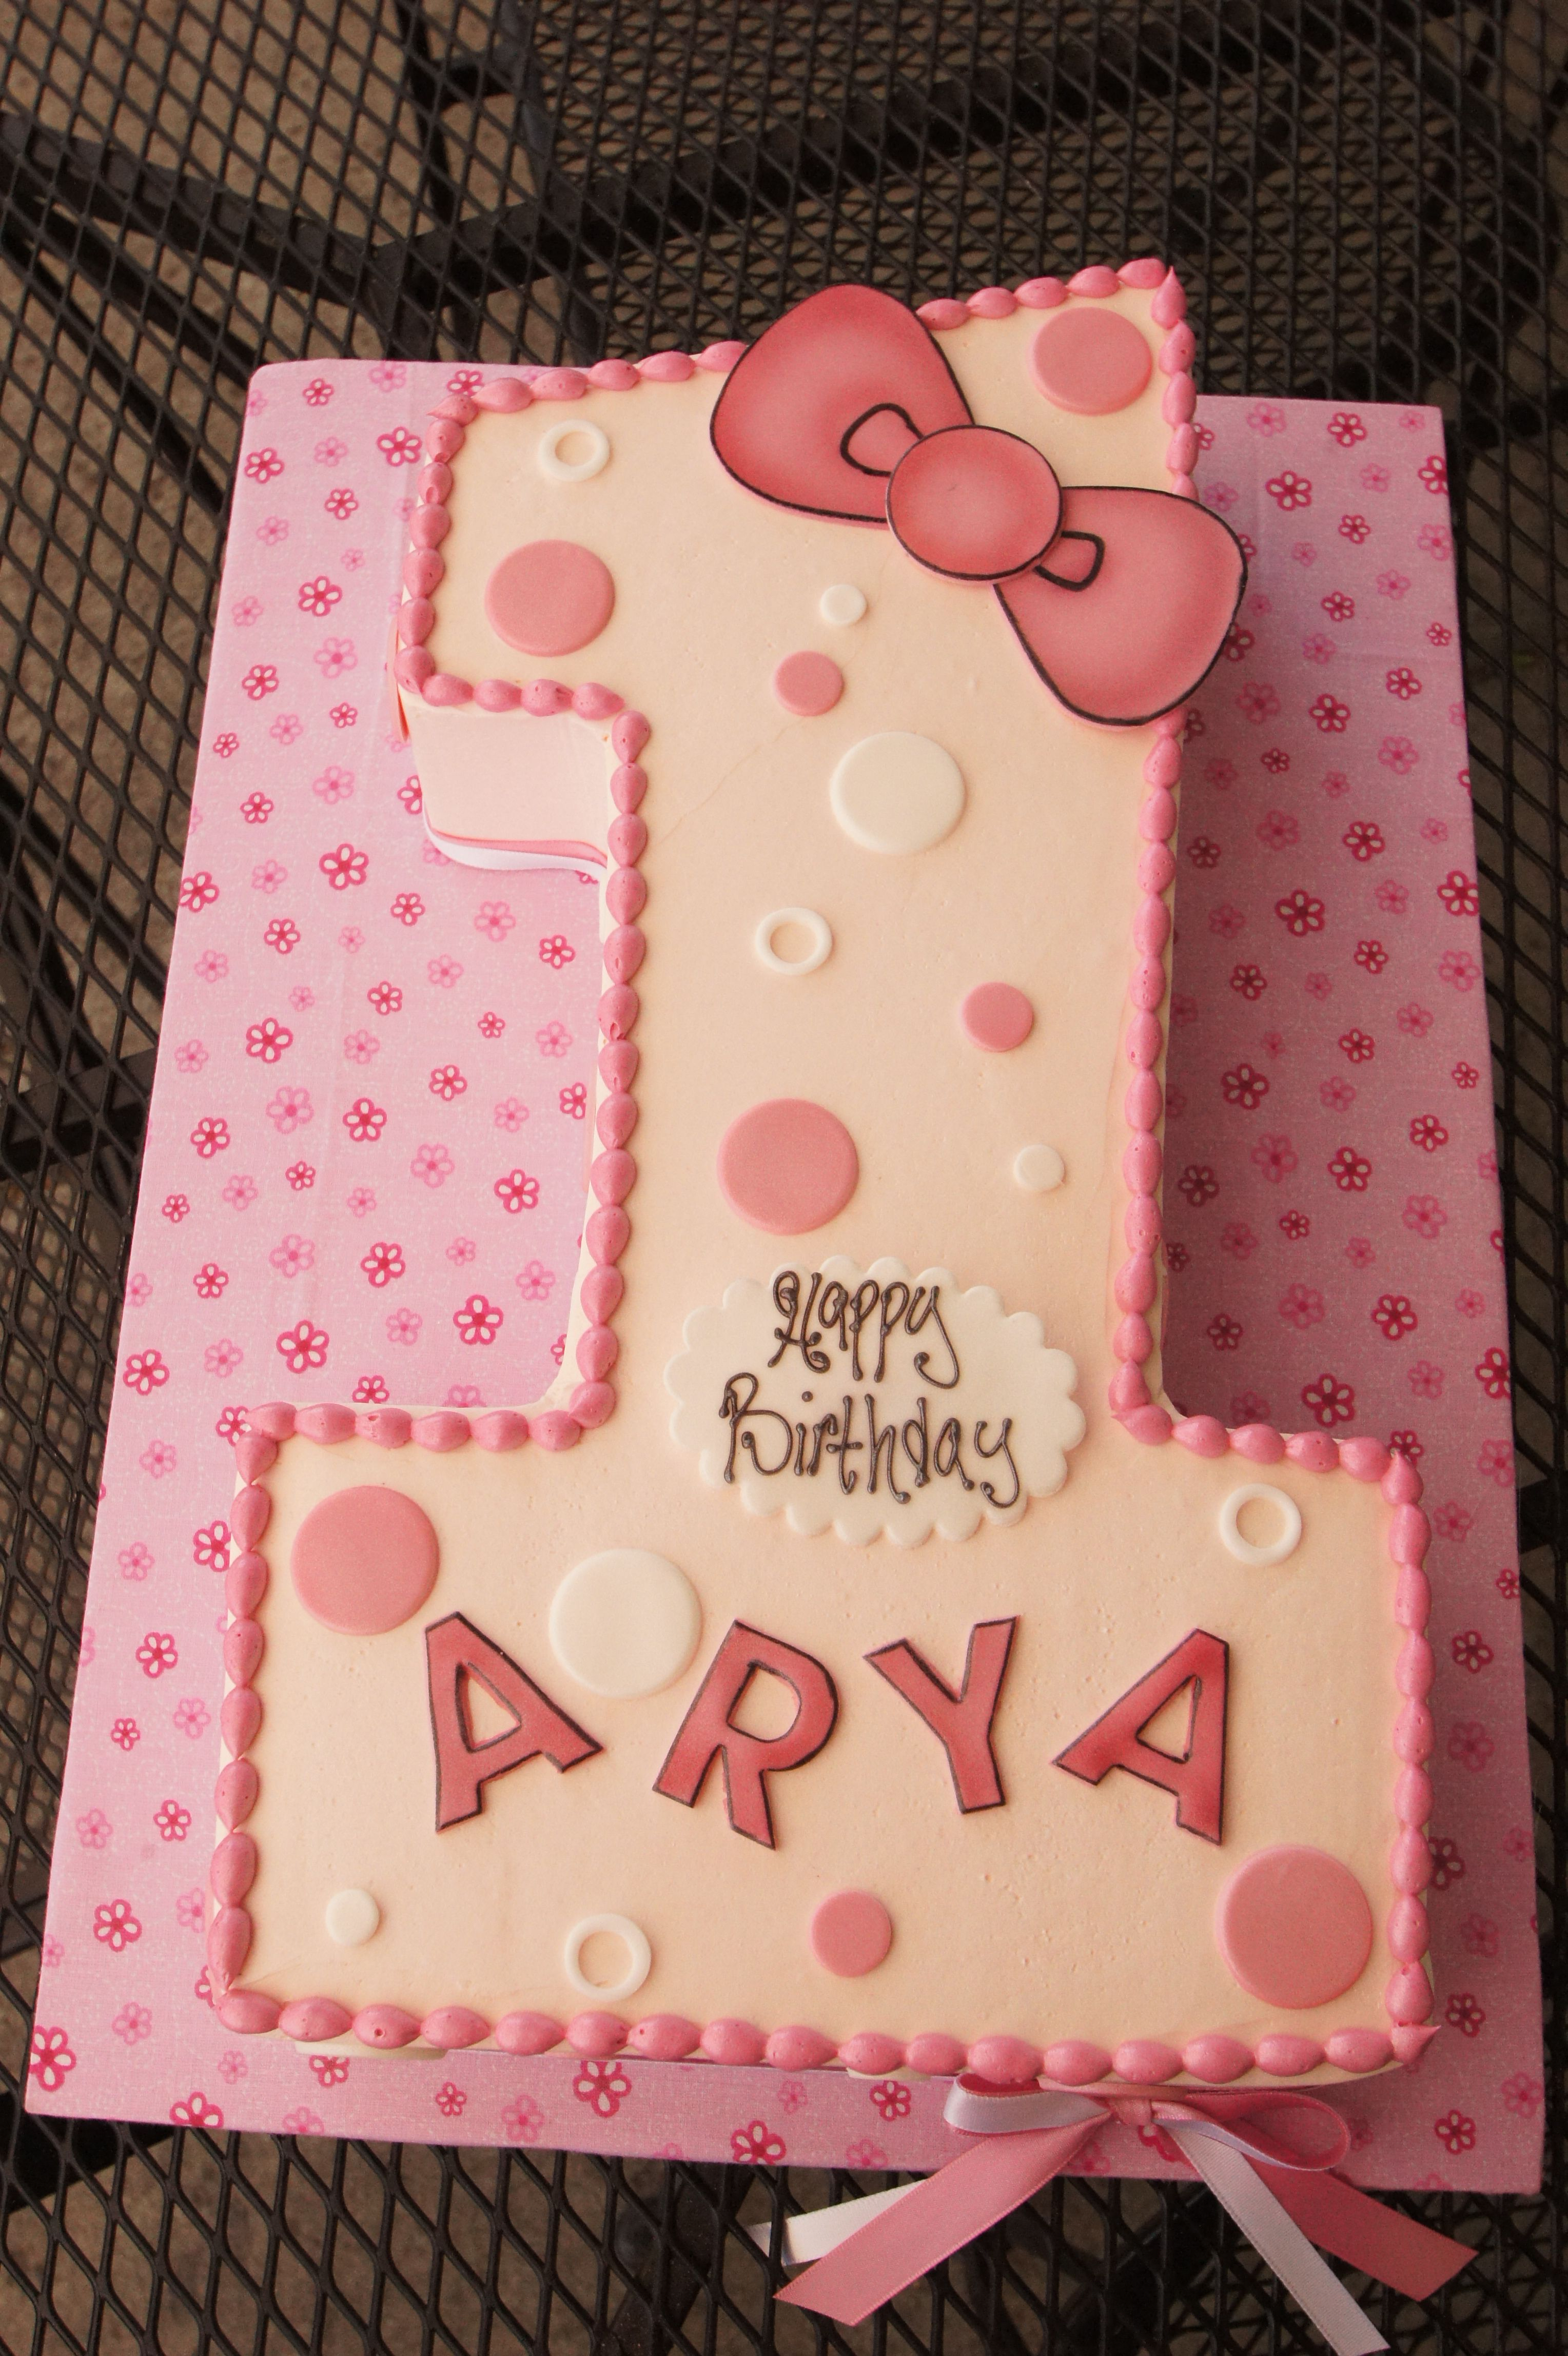 Number 1 Shaped Birthday Cake With Pink Hello Kitty Theme